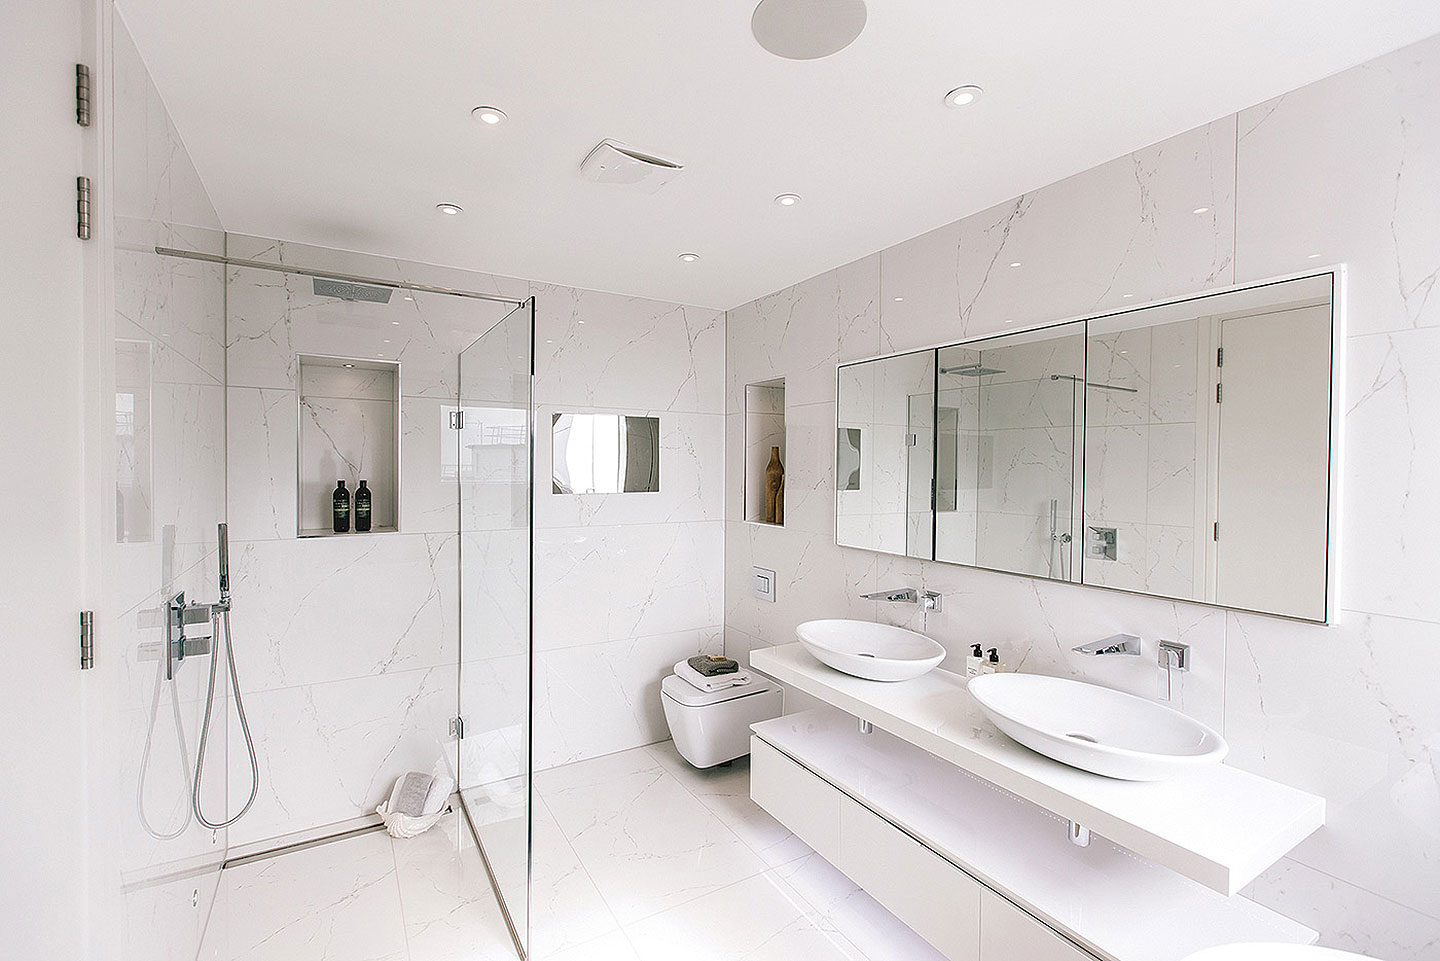 Bathrooms Tiles Throughout This Stunning Duplex Penthouse On The Essex Coast Tiles Baths